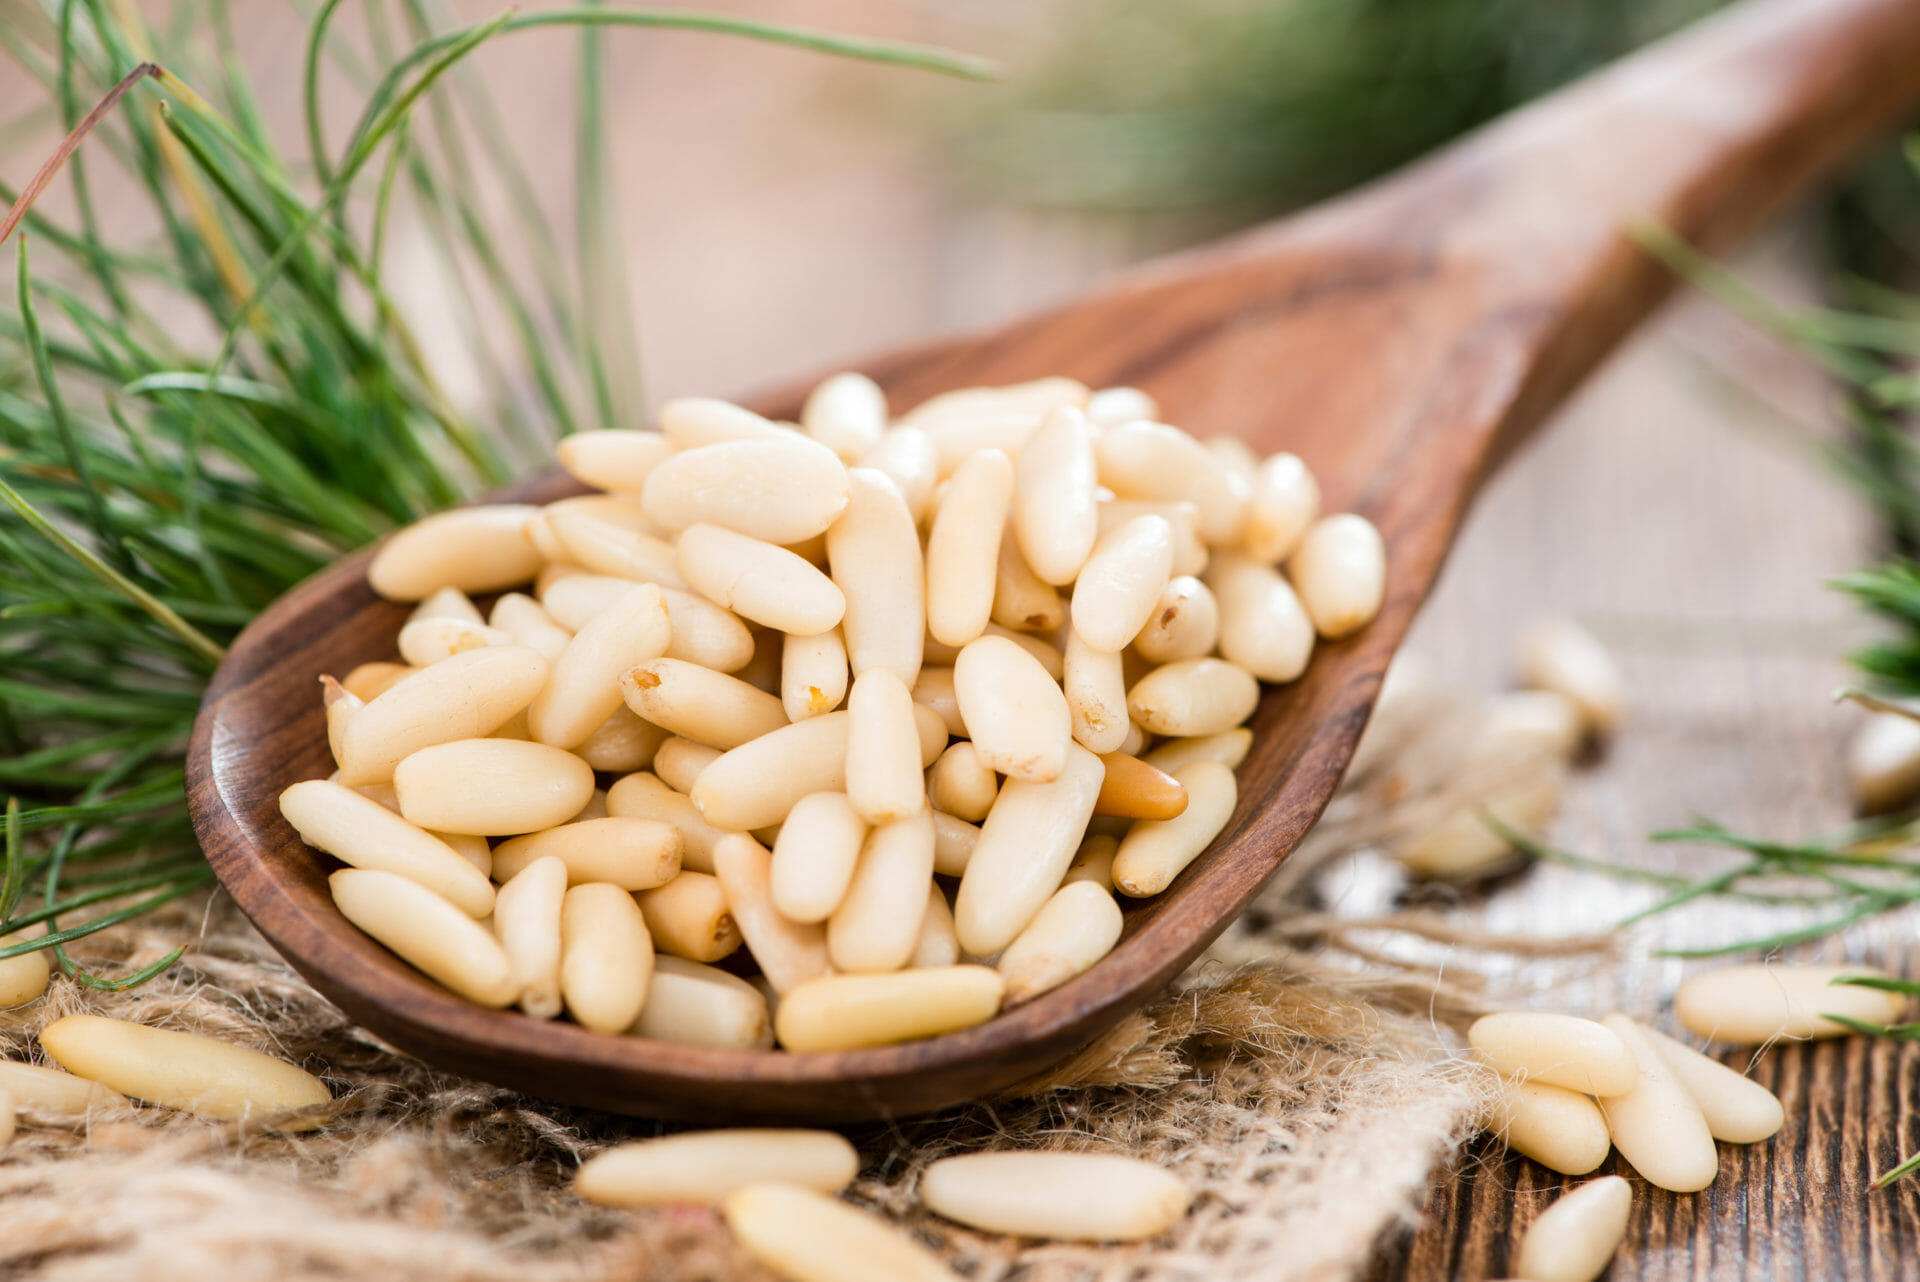 Pine nuts on a wooden spoon